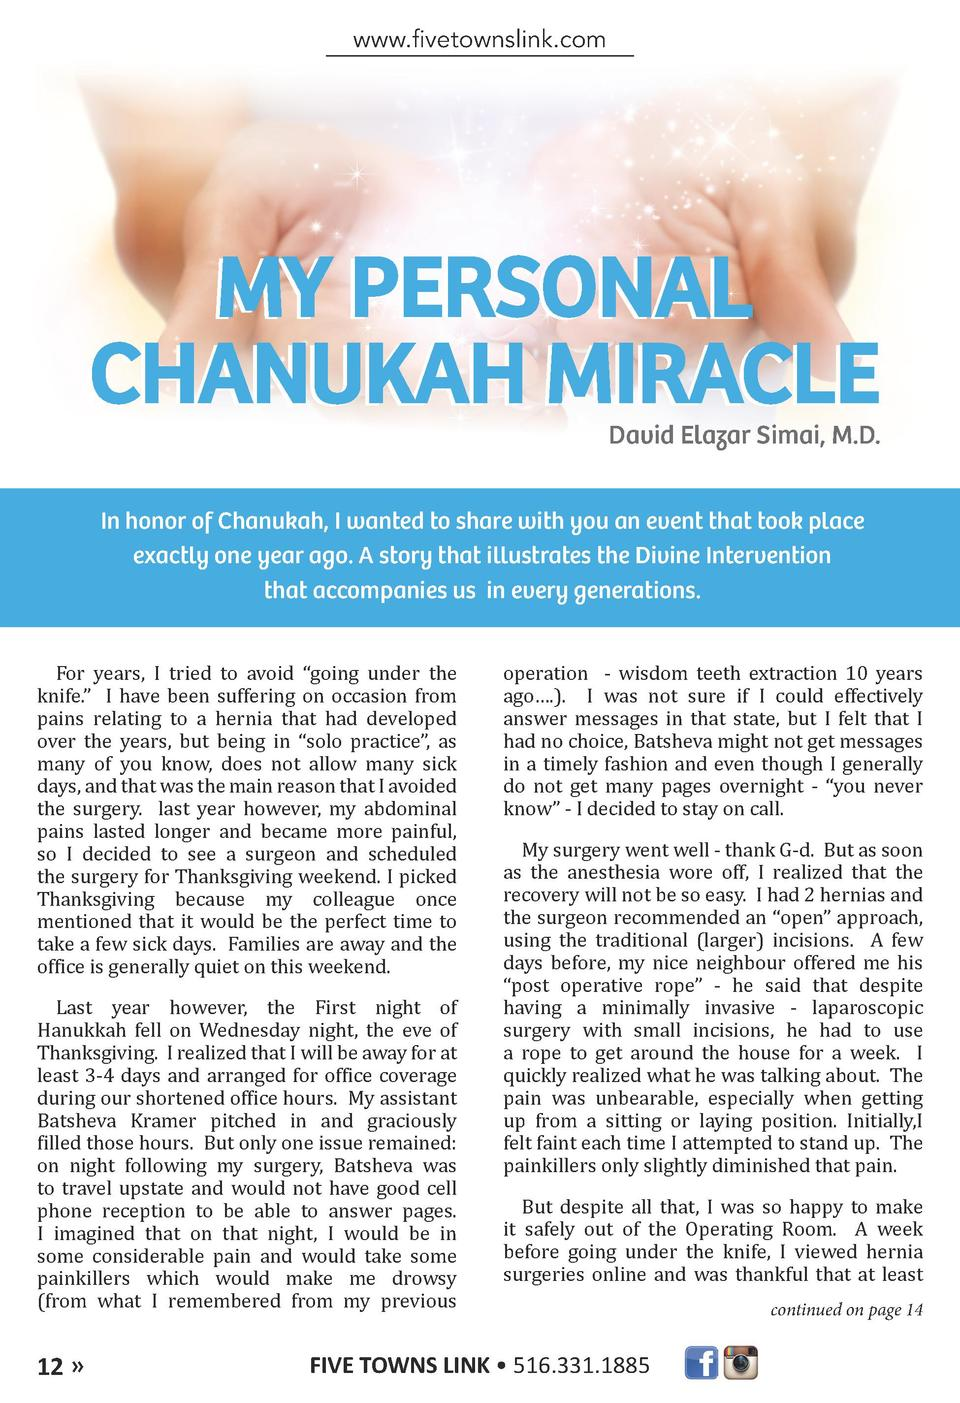 www.fivetownslink.com  MY PERSONAL CHANUKAH MIRACLE  David Elazar Simai, M.D.  In honor of Chanukah, I wanted to share wit...